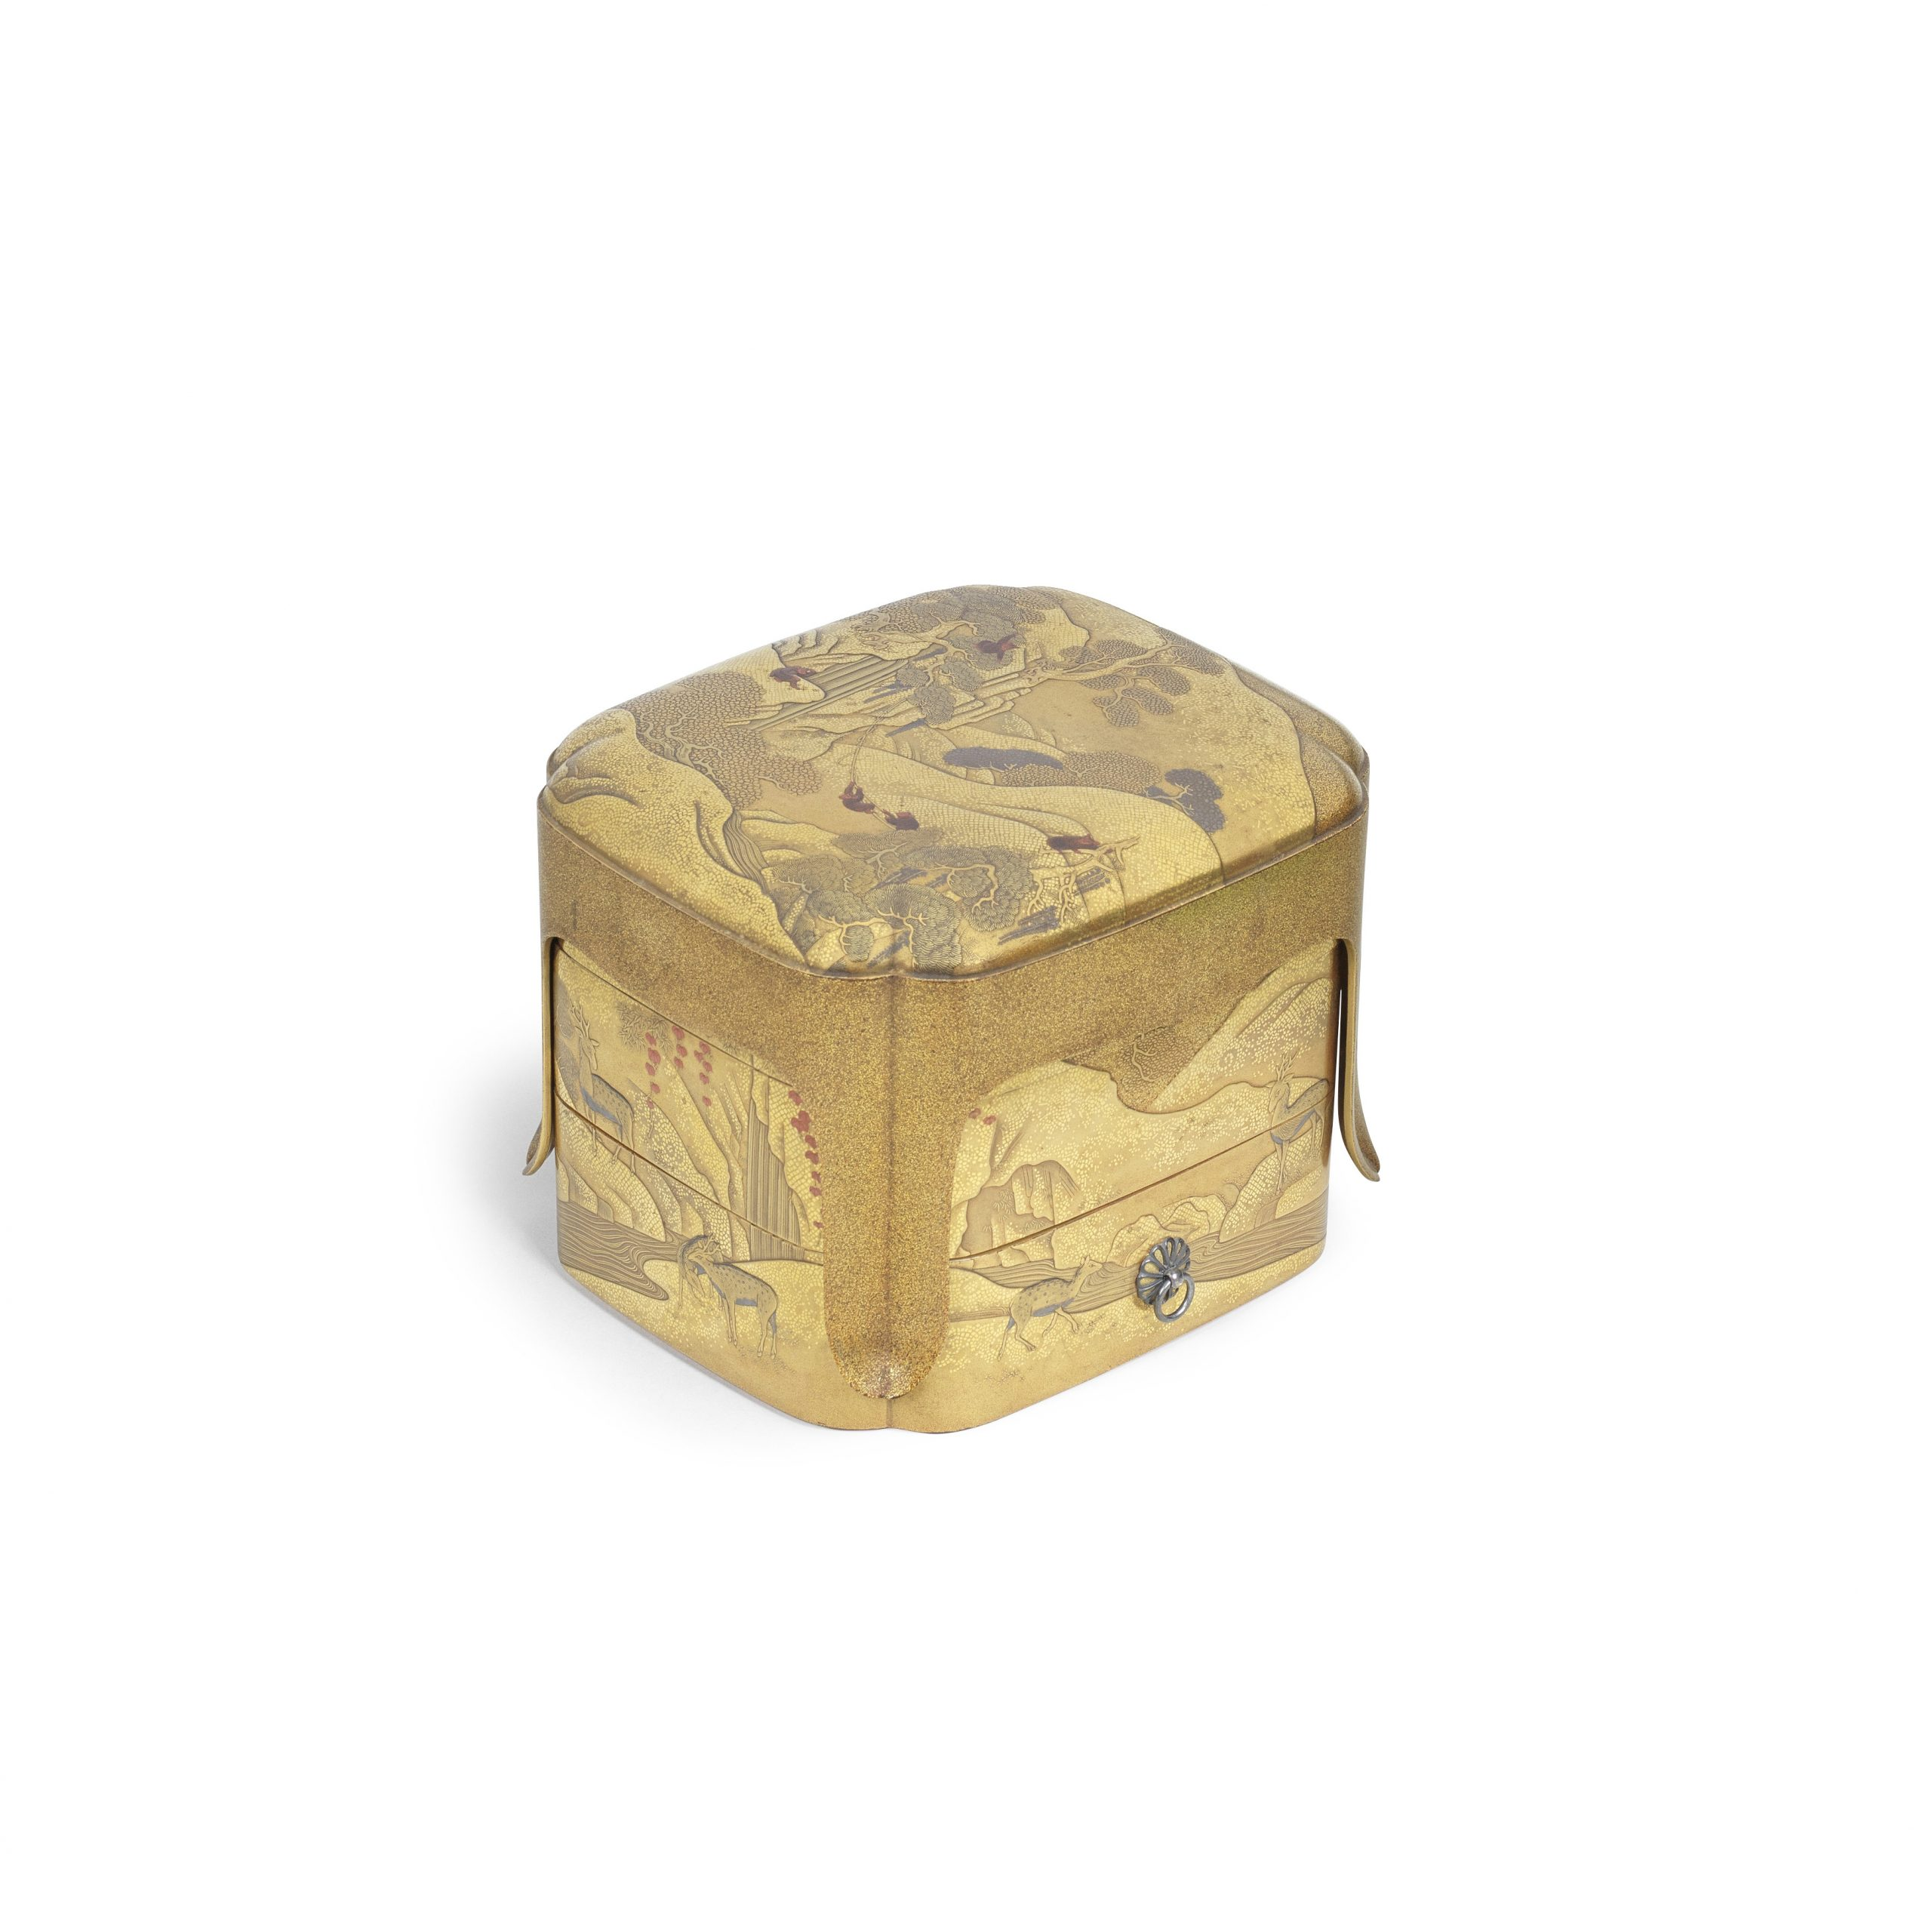 A gold-lacquer three-tiered stacking set of lobed boxes nestled within a tall four-legged stand-cum-cover, Meiji era (1868-1912), late 19th/early 20th century - Snow, Sex and Spectacle